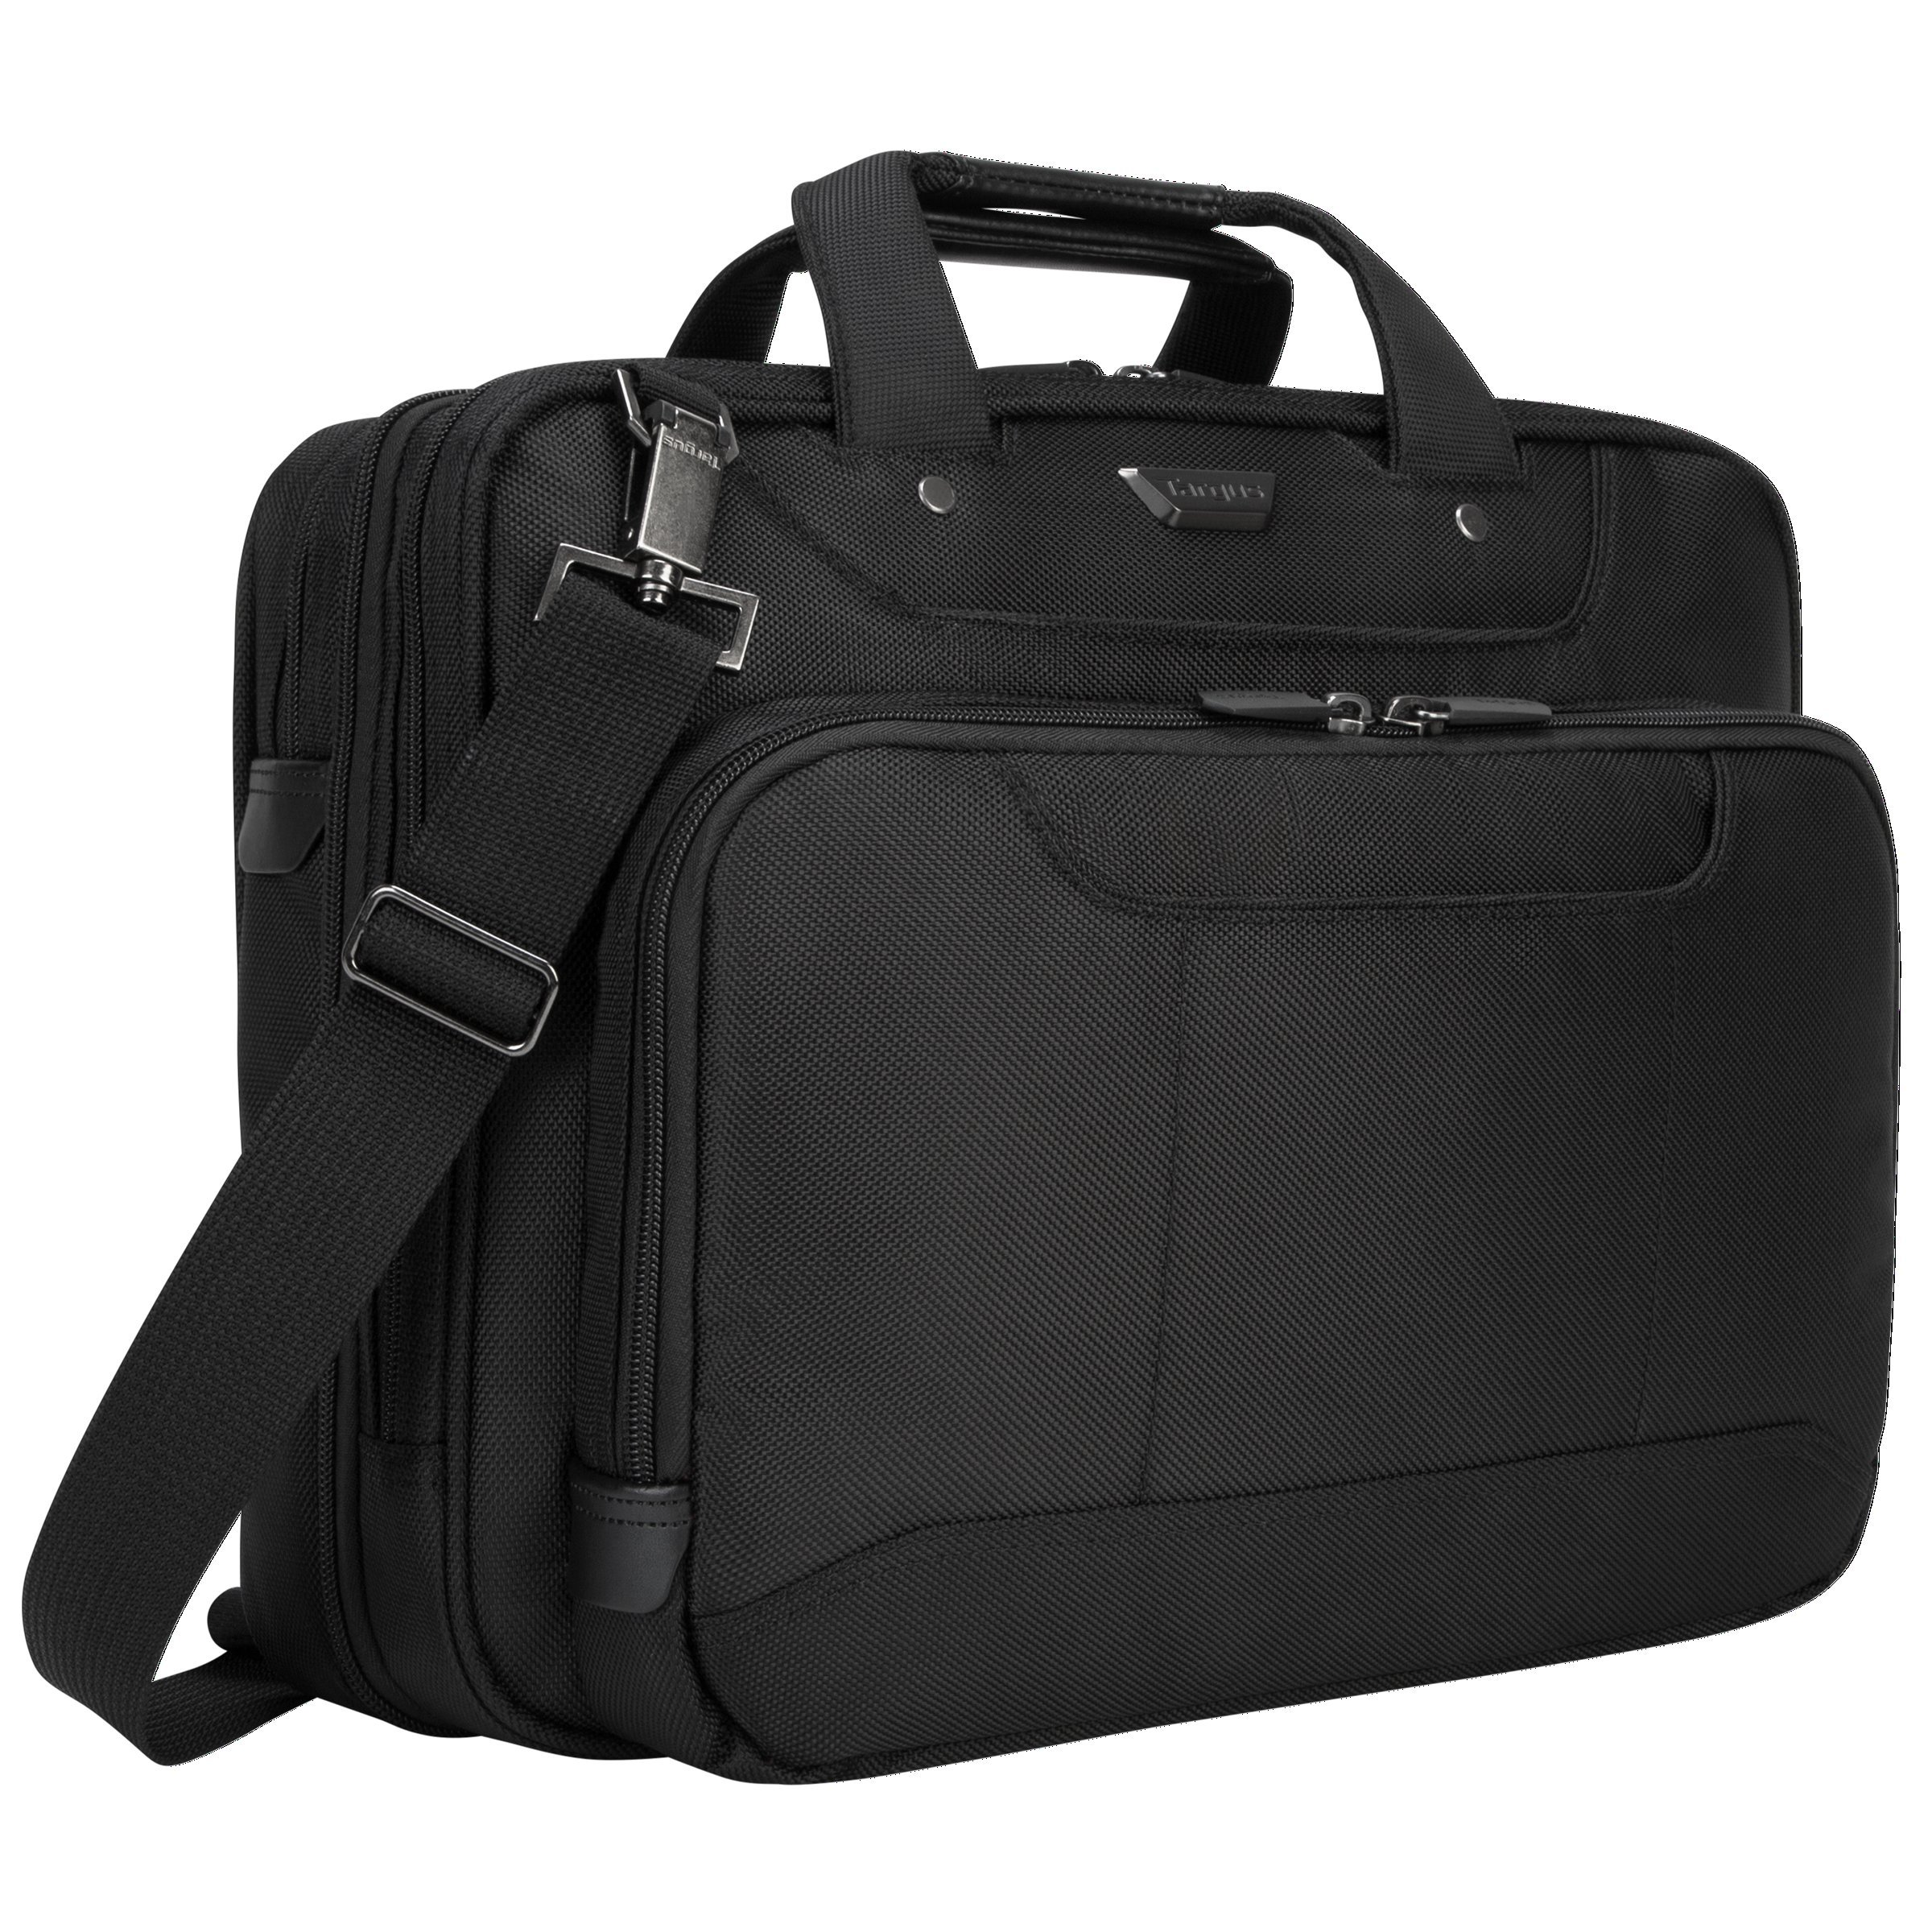 Targus Corporate Traveler Checkpoint-Friendly Traveler Laptop Case for 14-Inch Laptops, Black (CUCT02UA14S) by Targus